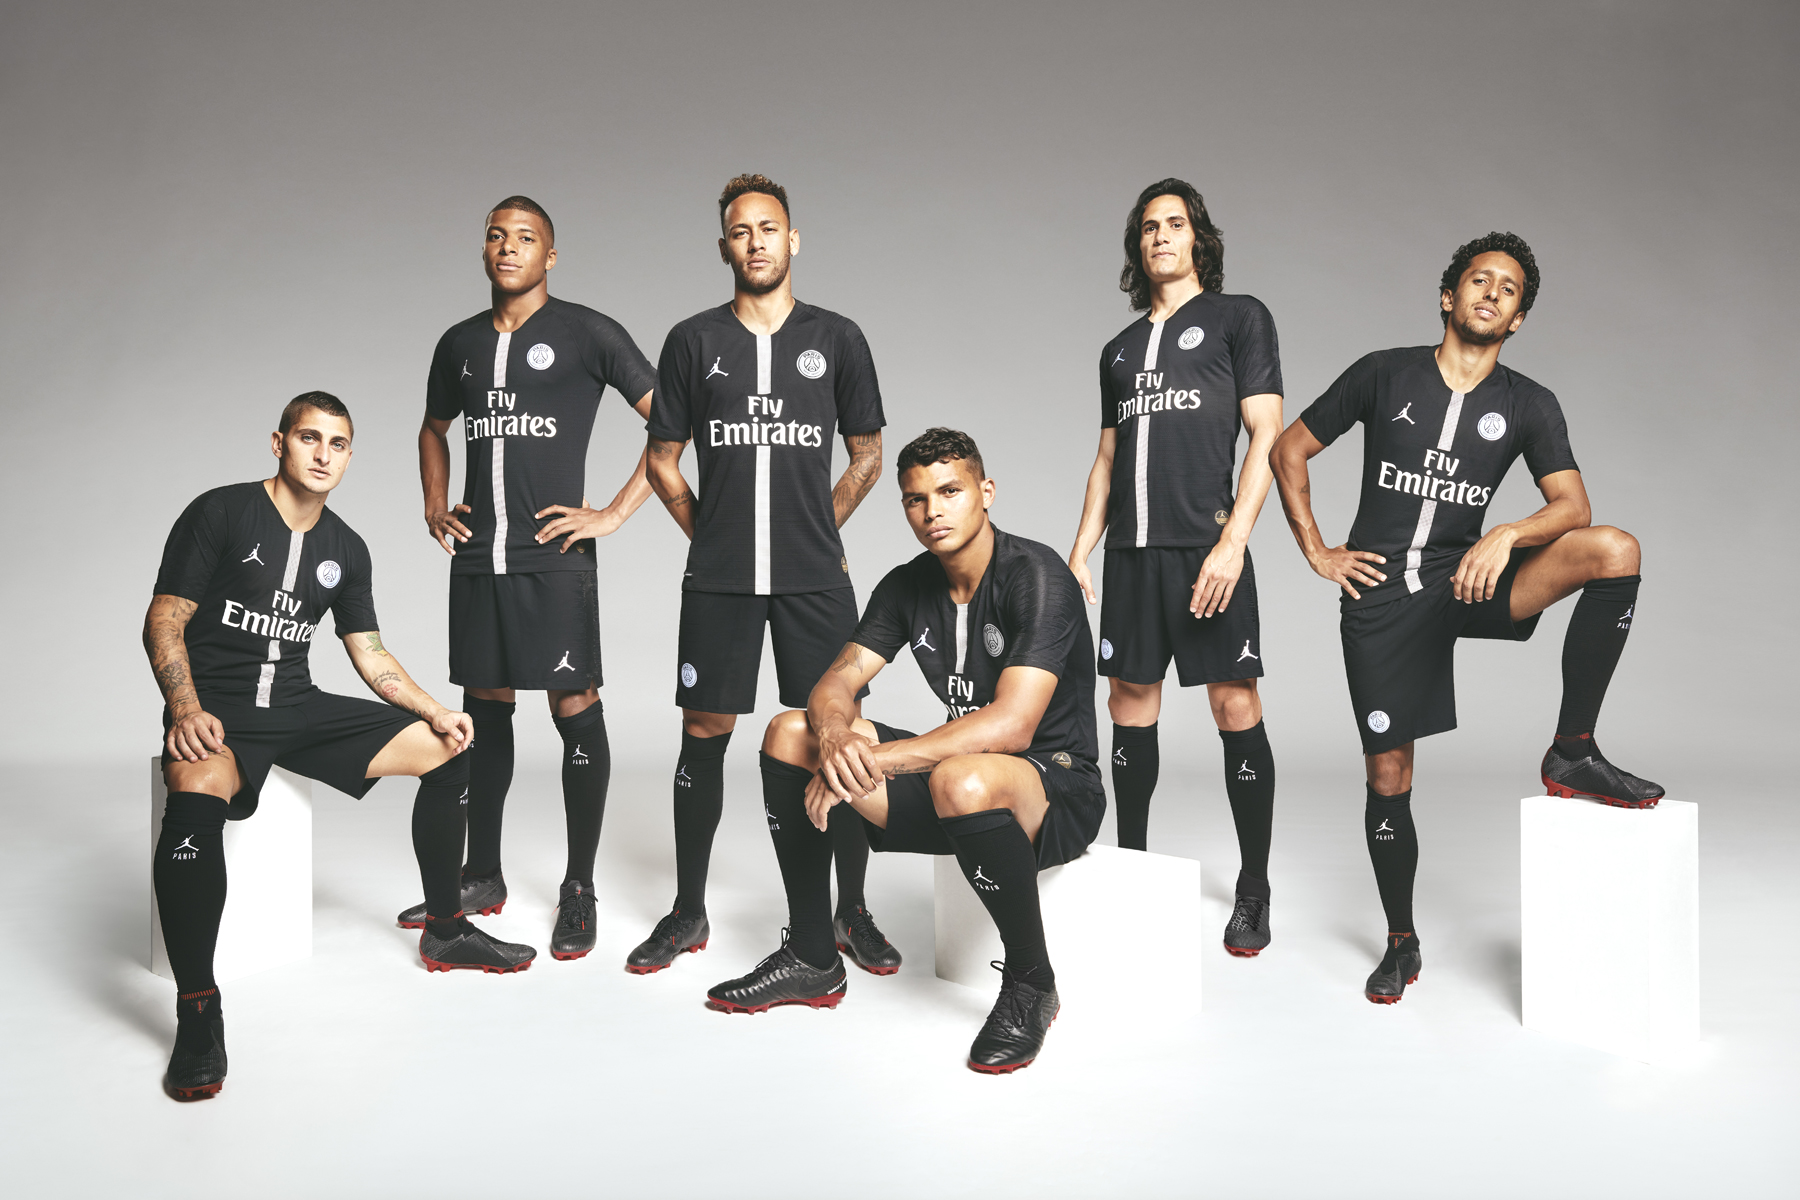 Paris Saint Germain and Jordan Brand team up | Paris Saint